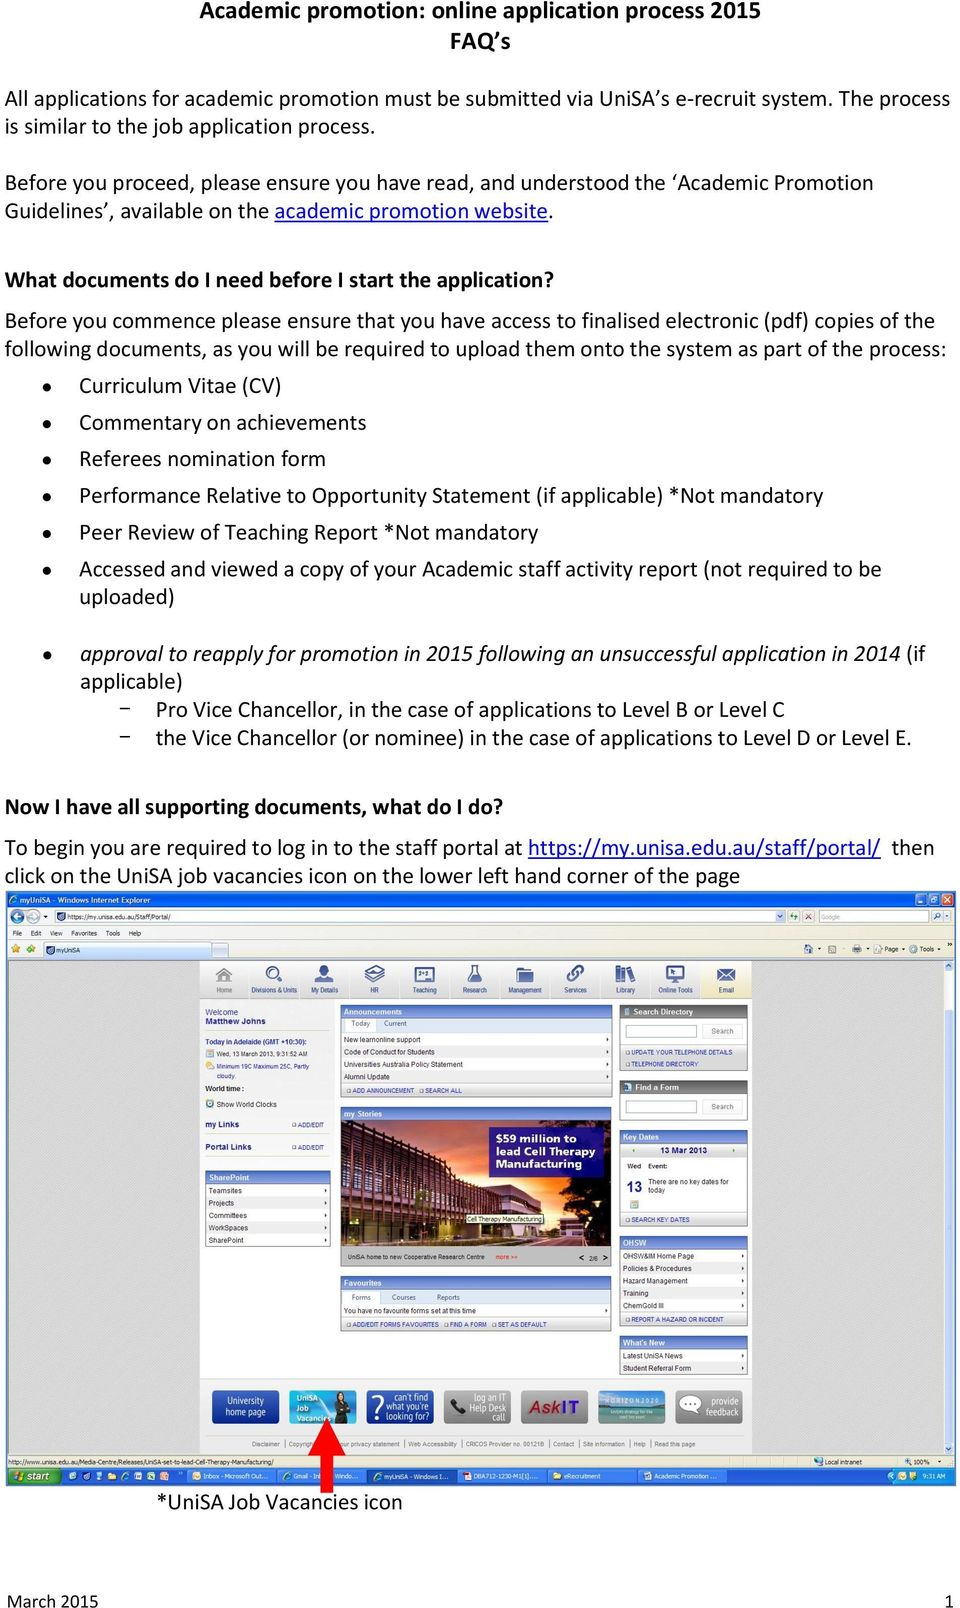 Academic Promotion Online Application Process 2015 Faq S Pdf Camera Circuit Board Promotiononline Shopping For Promotional Before You Commence Please Ensure That Have Access To Finalised Electronic Copies